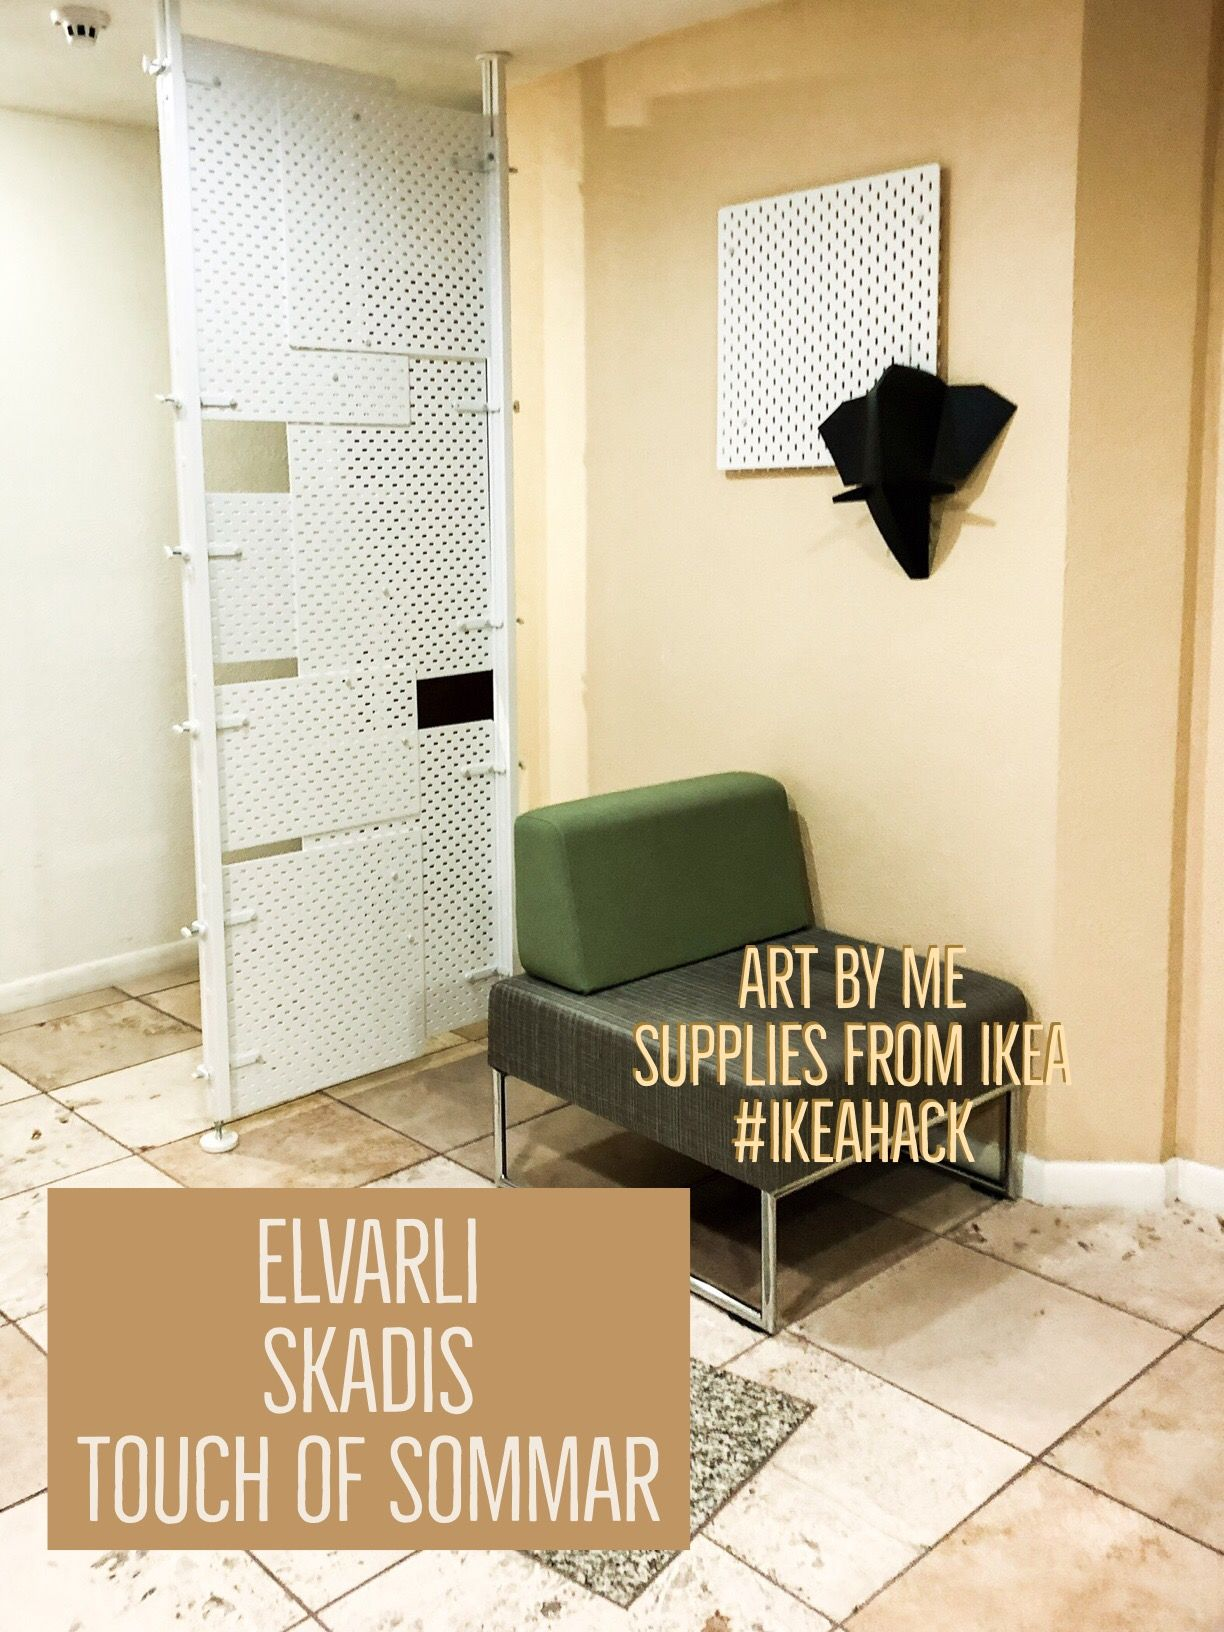 Ikeahack room divider break up space screen ikea for Elvarli ikea hack